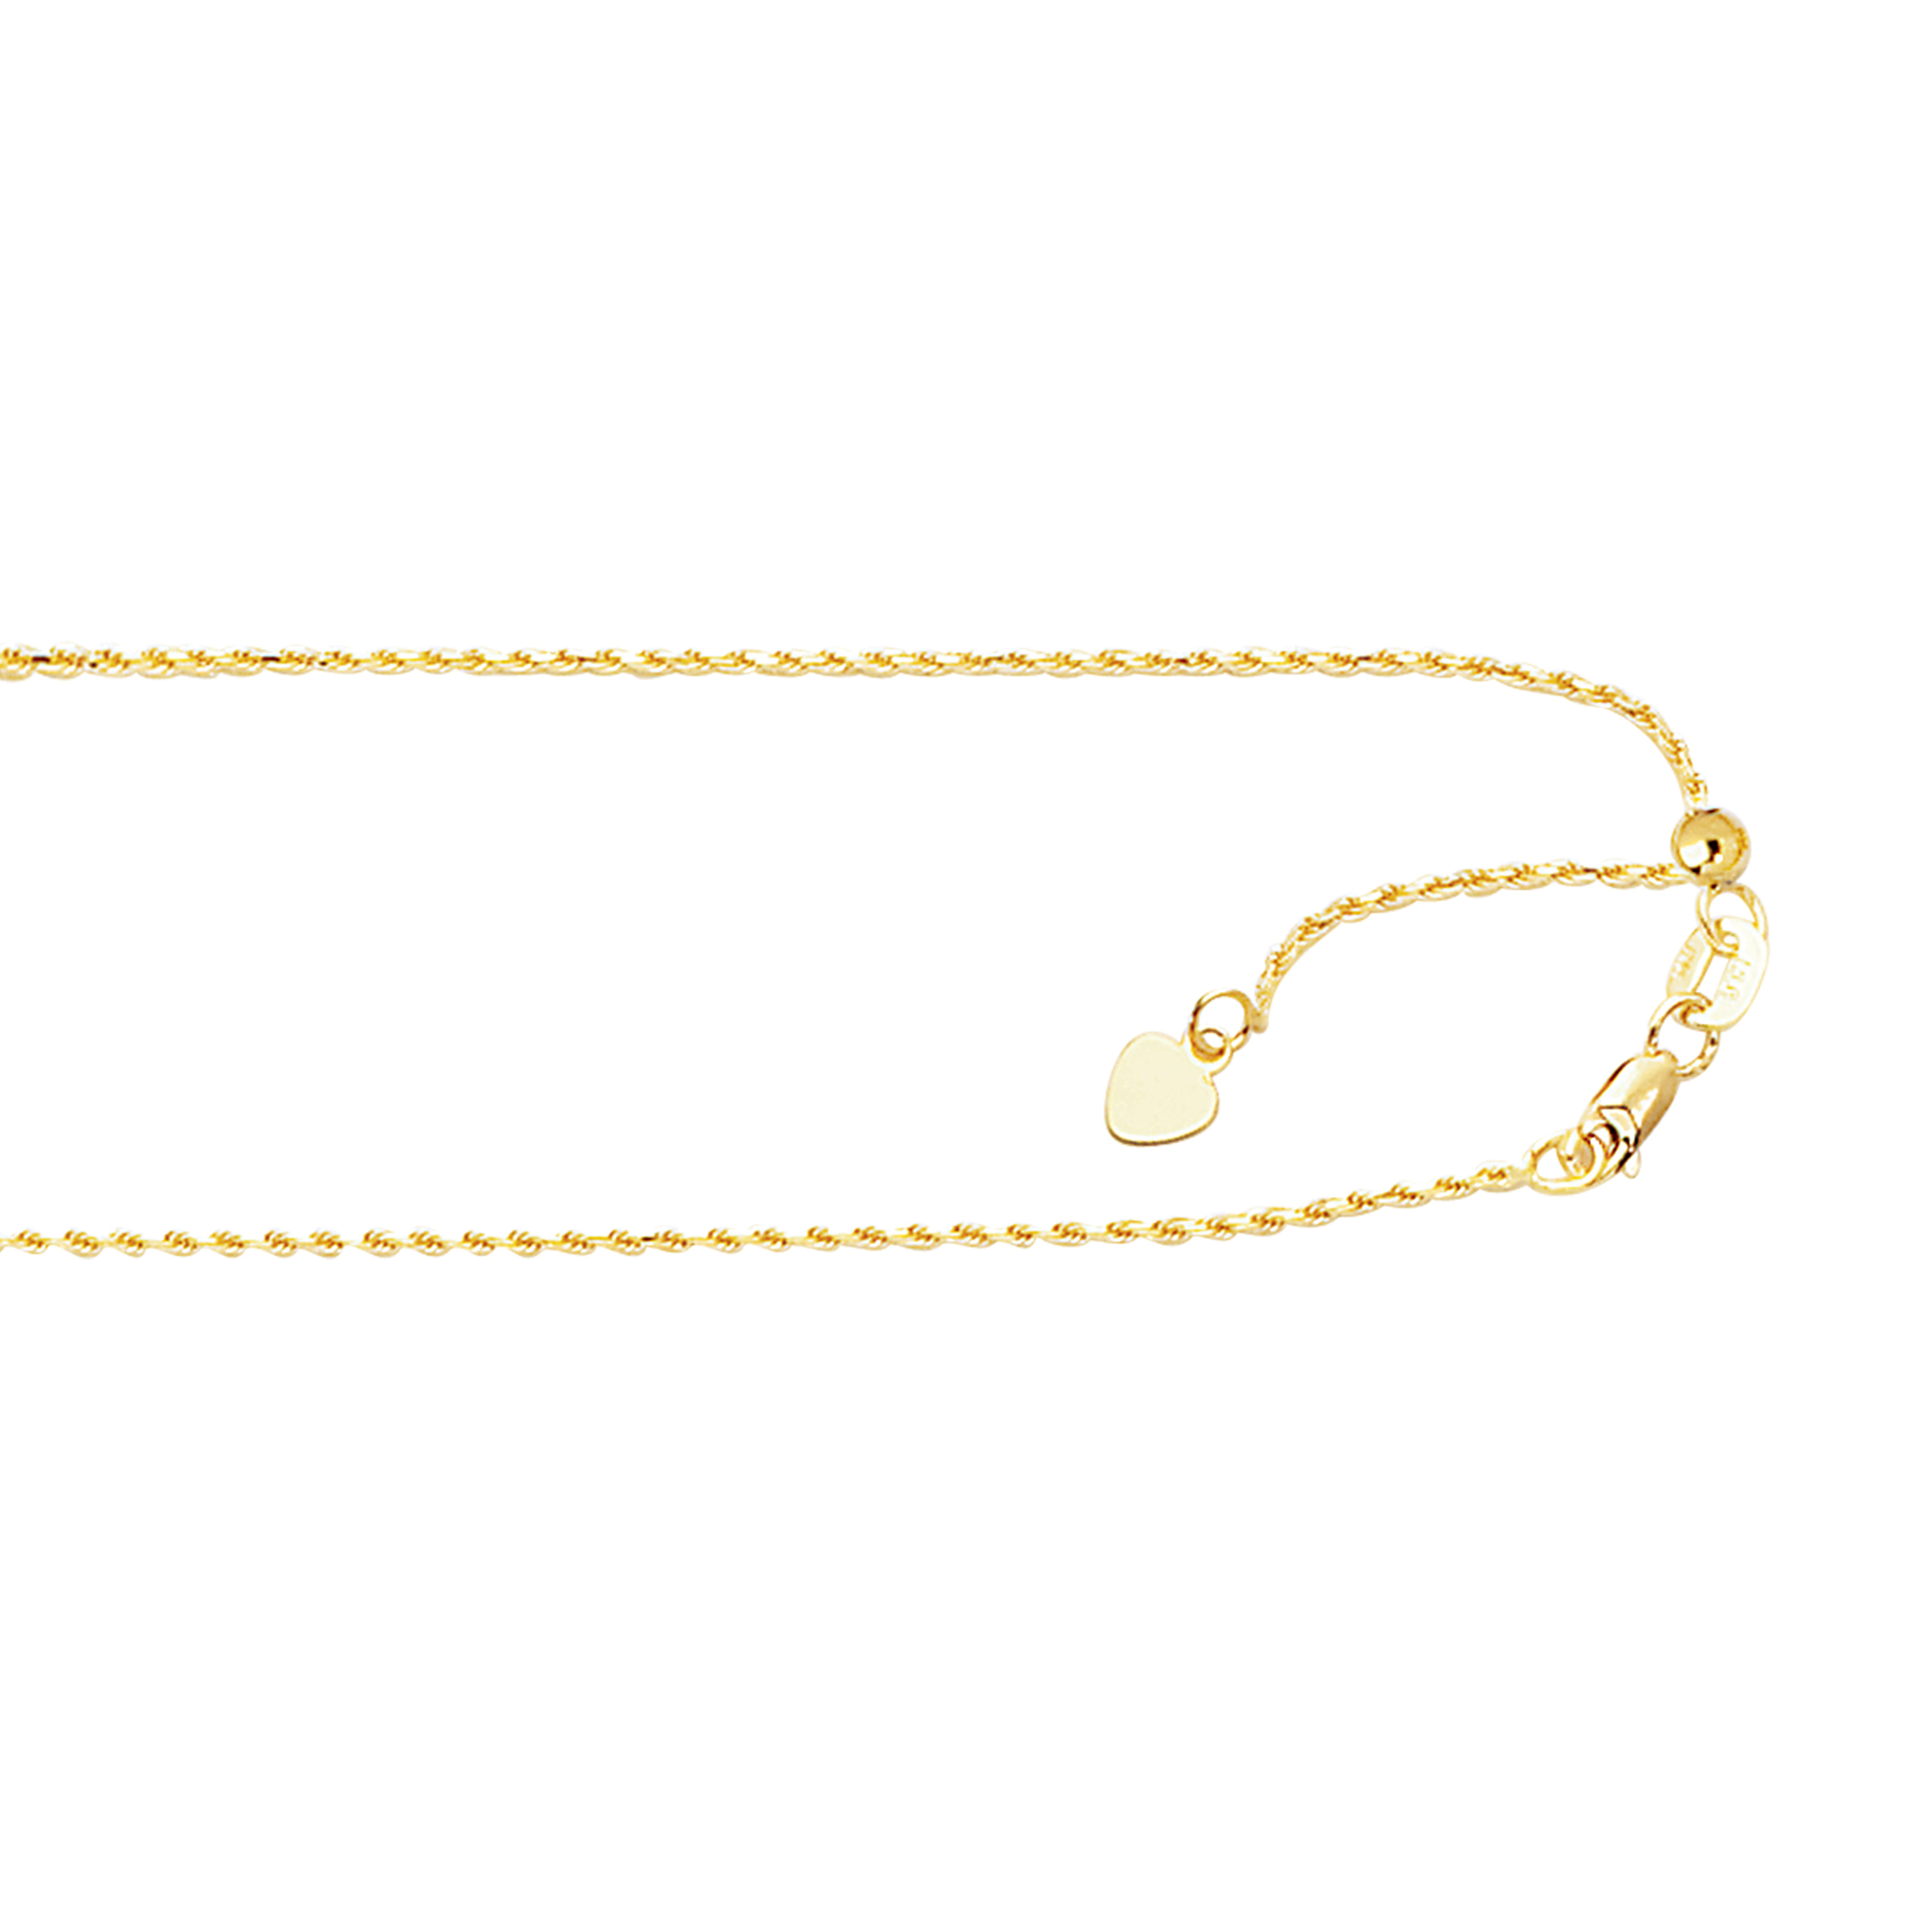 luxurman-solid-10k-gold-rope-chain-for-women-adjustable-1mm-wide ye.jpg d68a37d33a